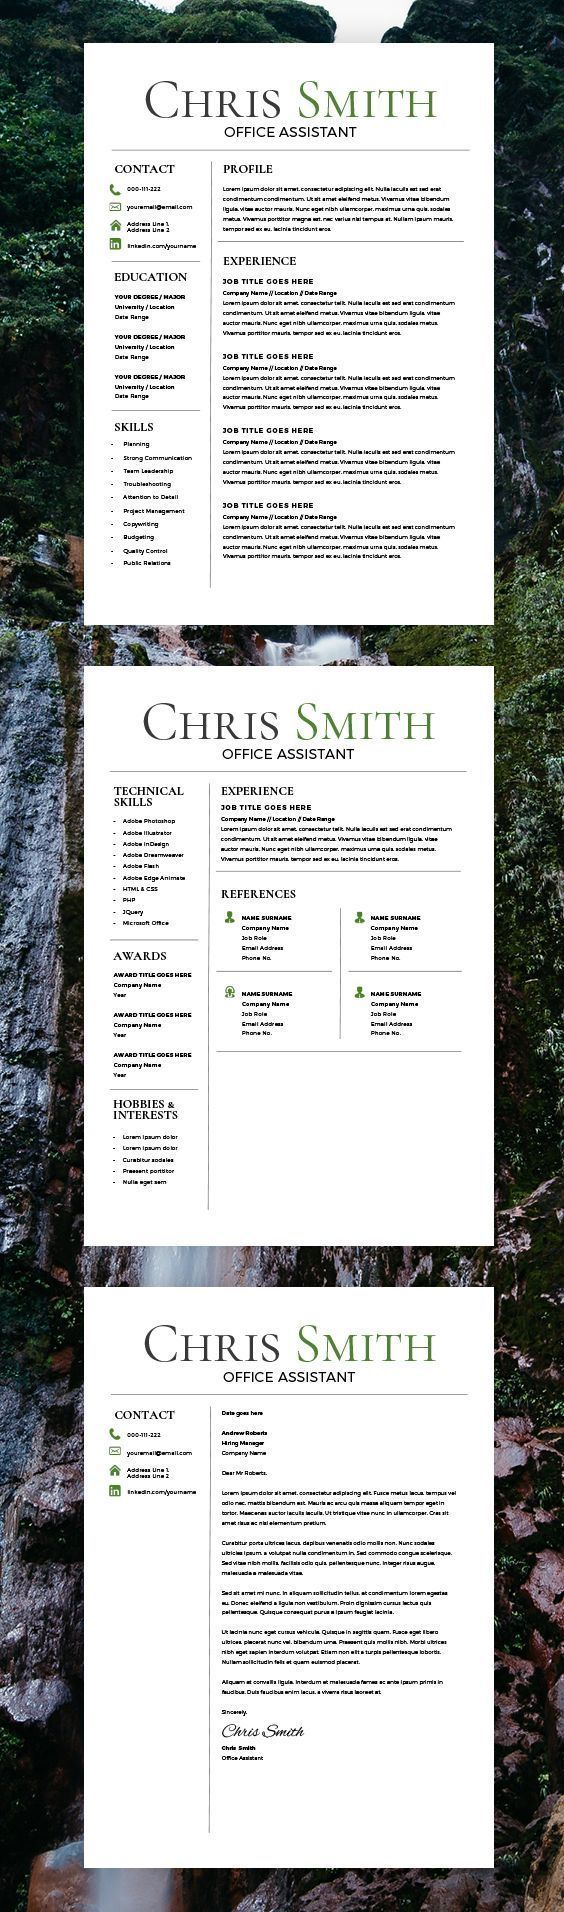 Resume Cv Templates Free Download%0A appropriate business letter format